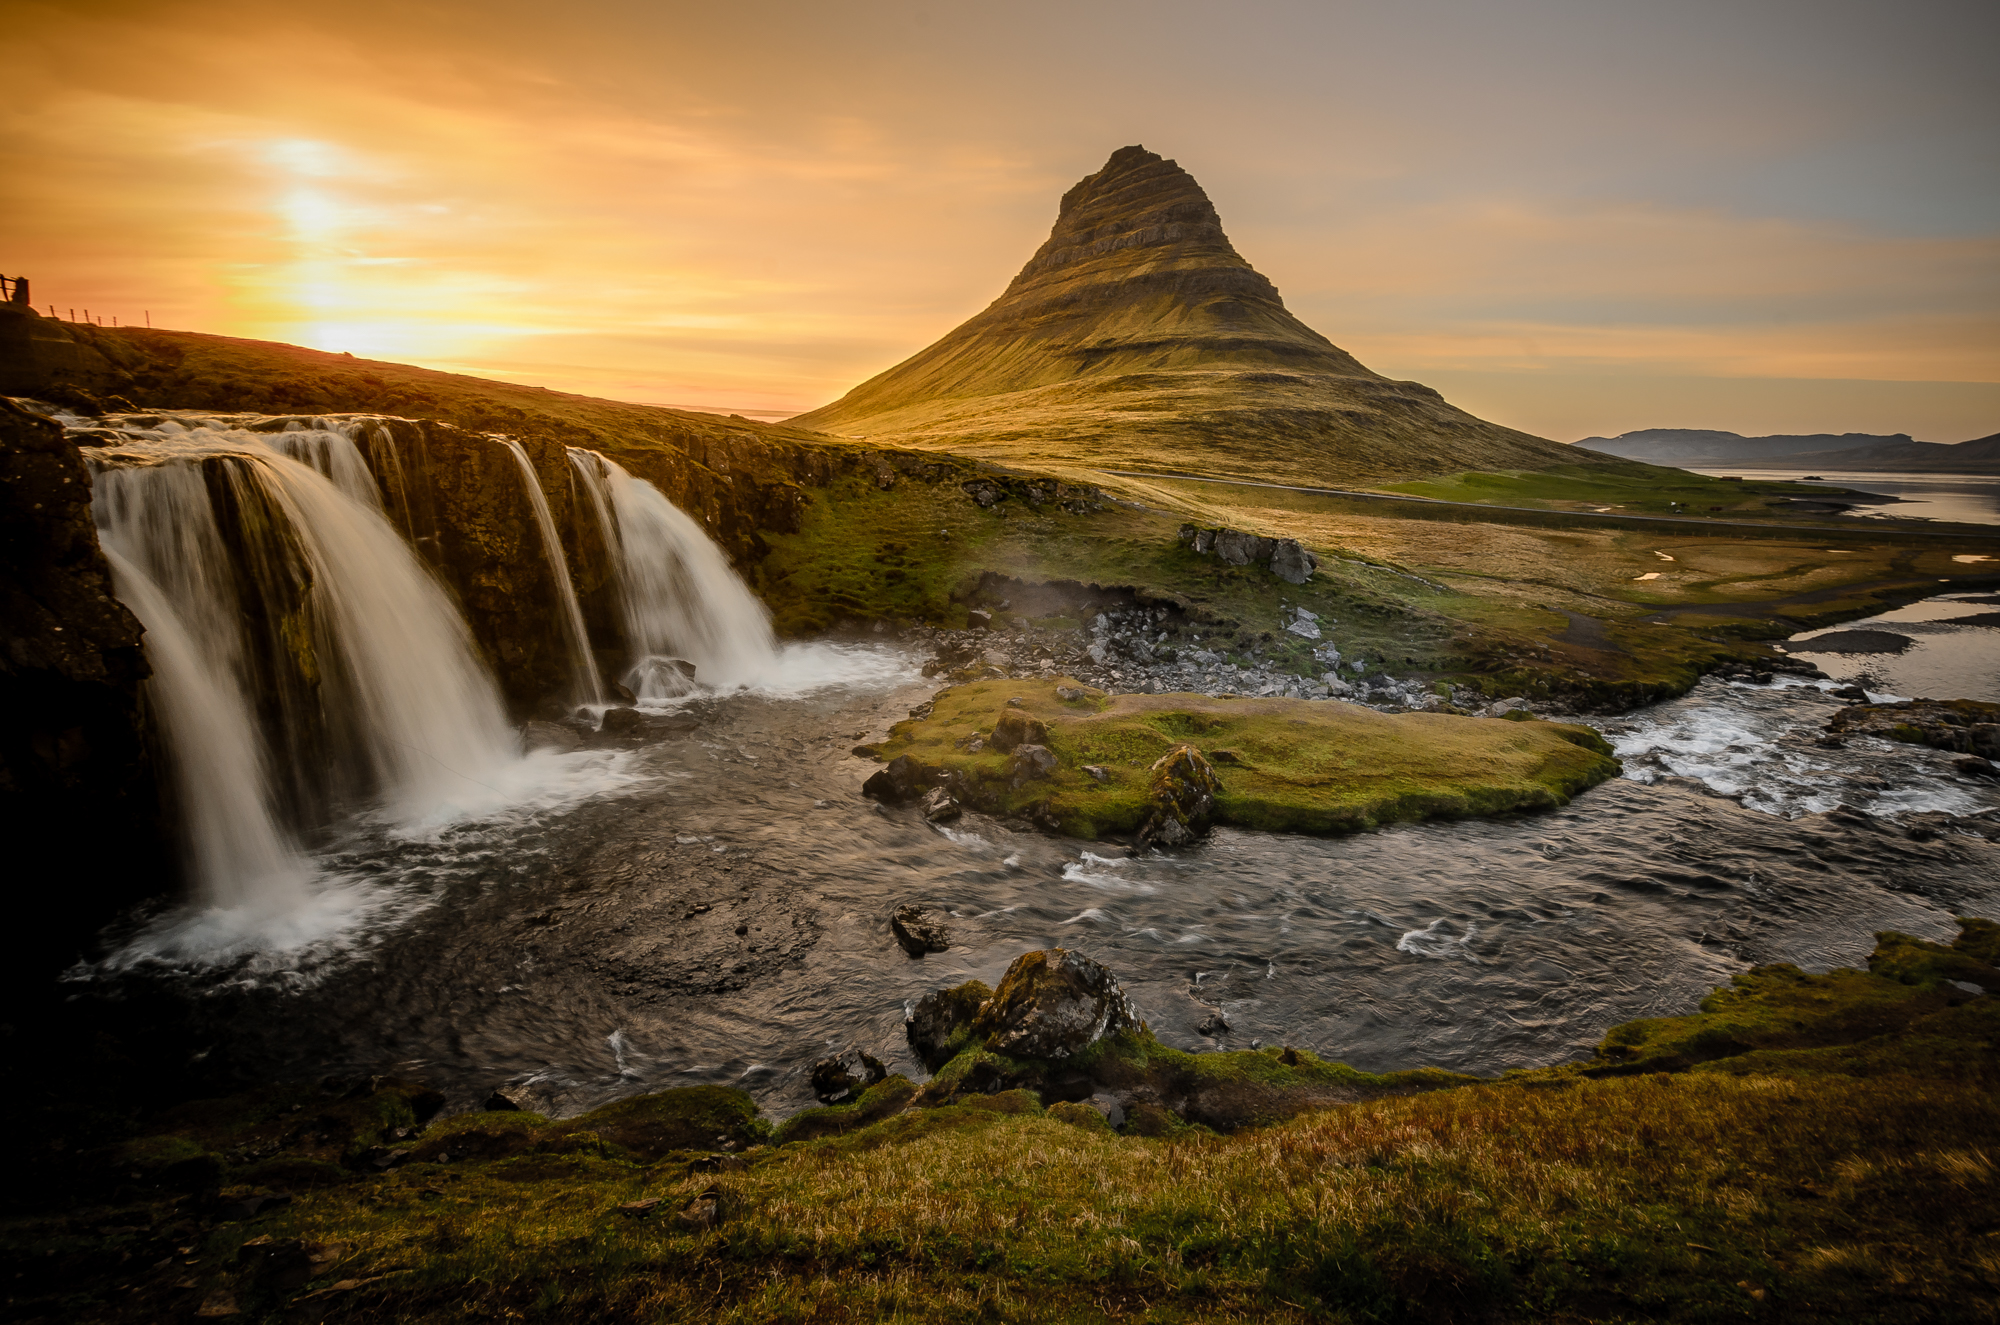 The very well known Kirkjufellsfoss waterfall just outside the town of Grundarfjörður.